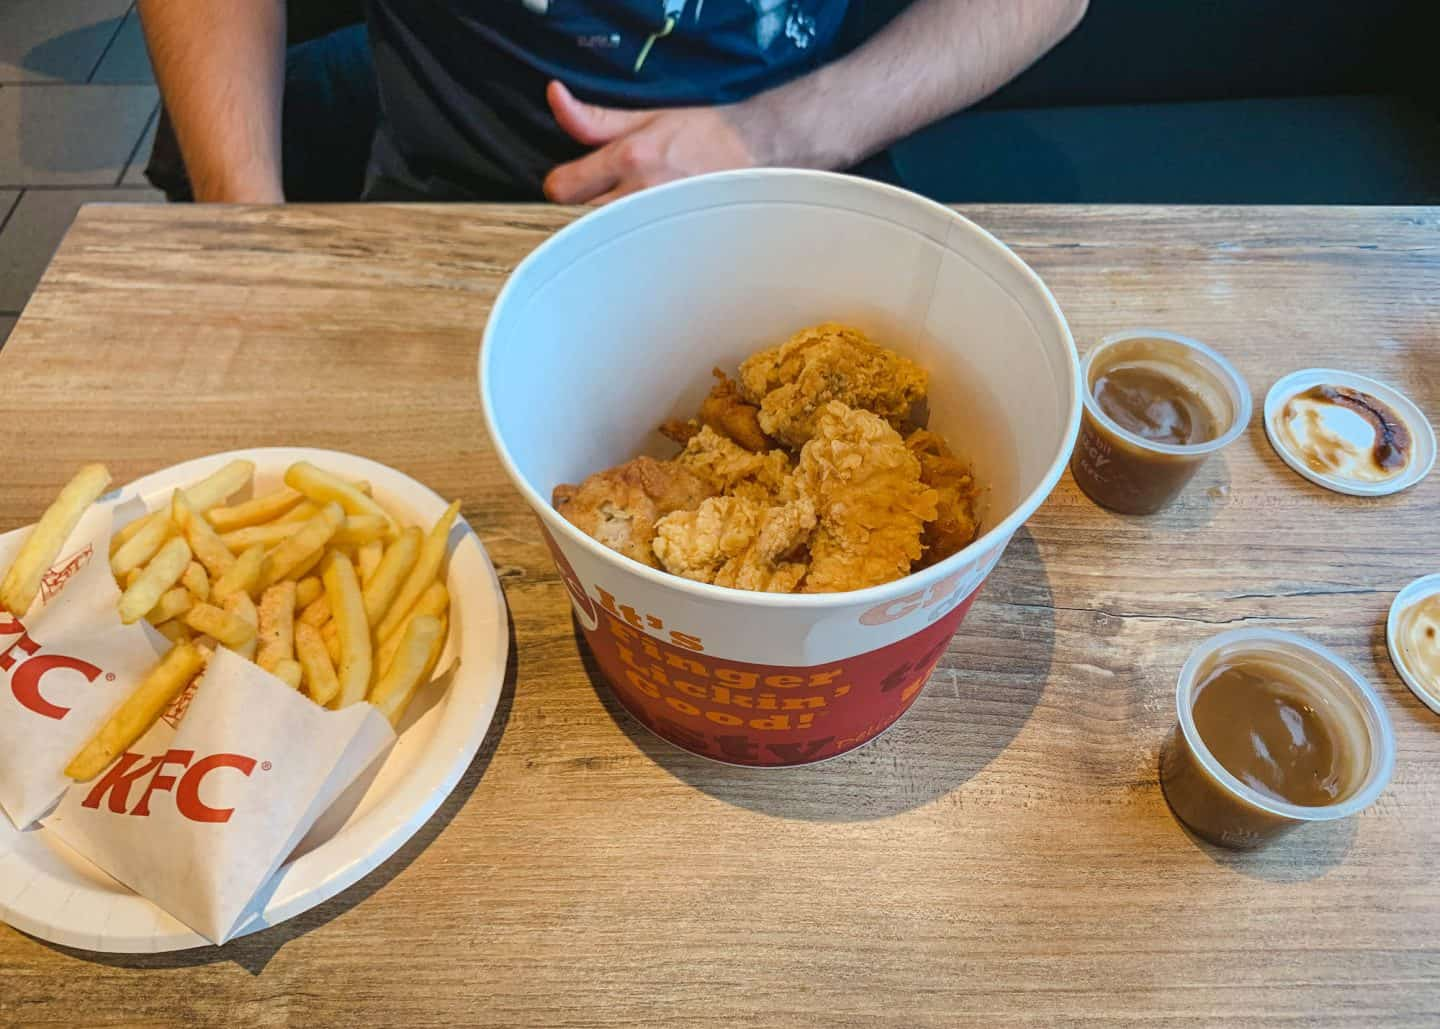 KFC in Iceland supposedly is the best in the world